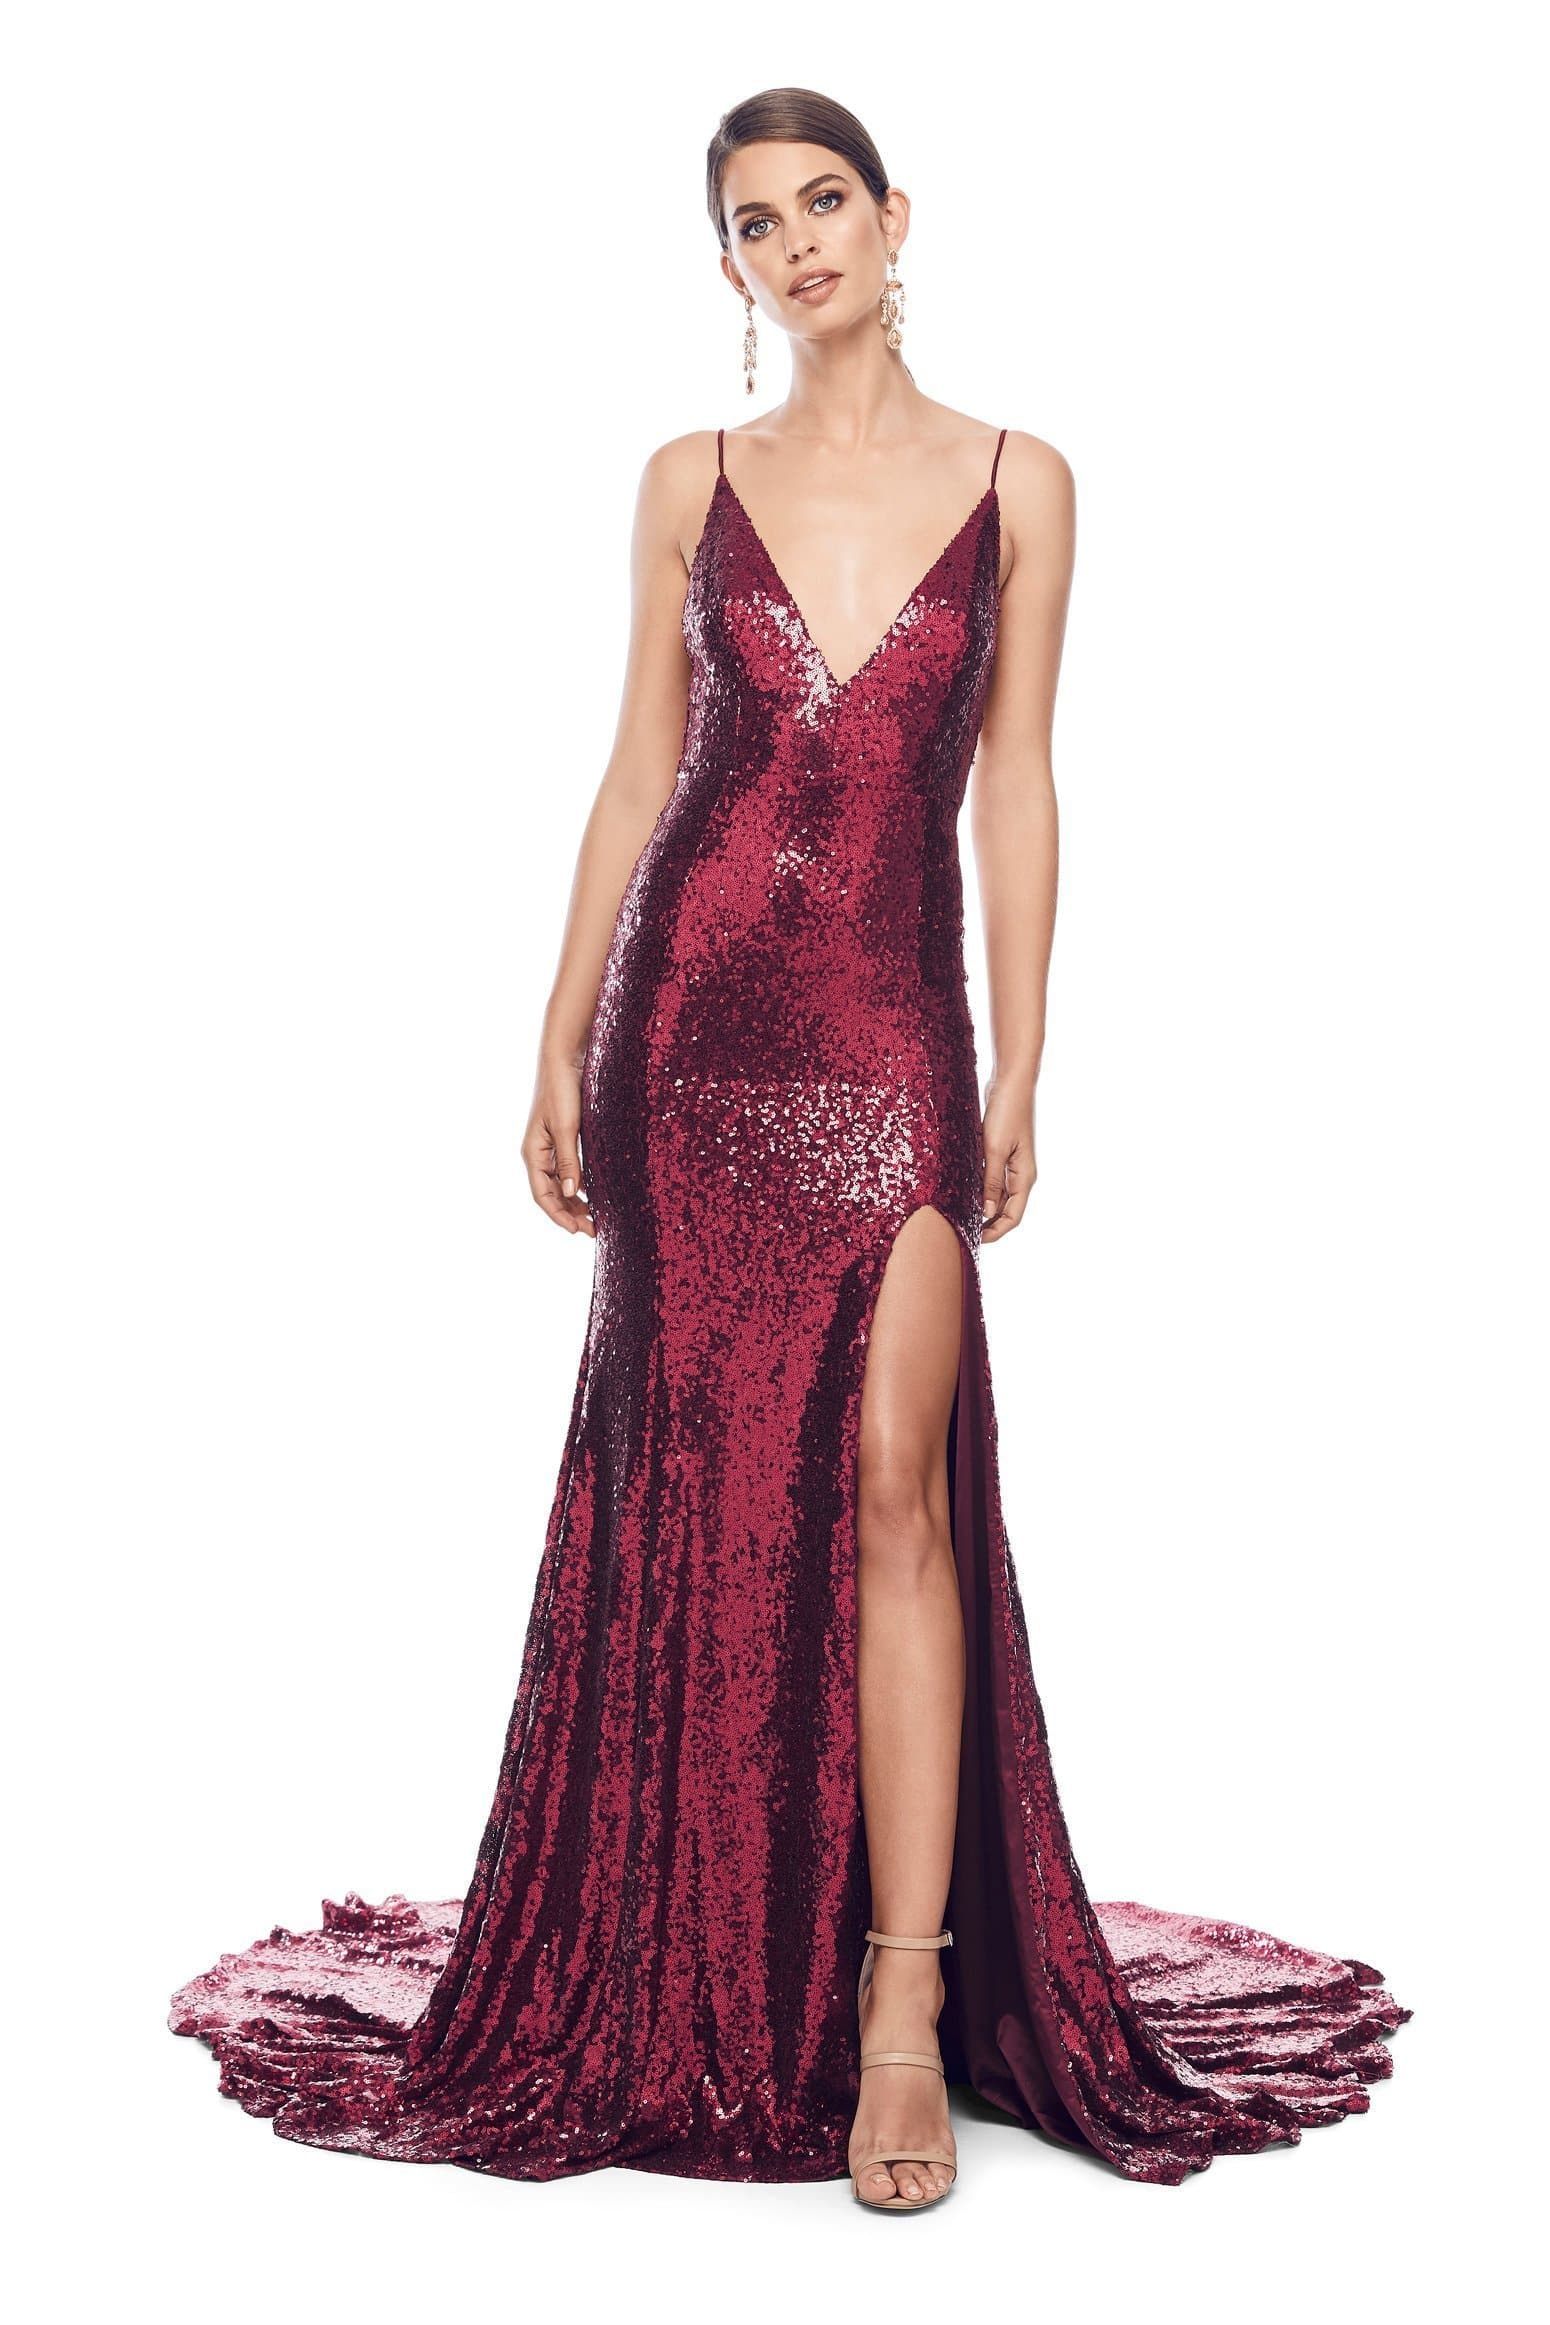 Armanah - Burgundy Sequin Gown with V Neck, Low Back & Mermaid Train